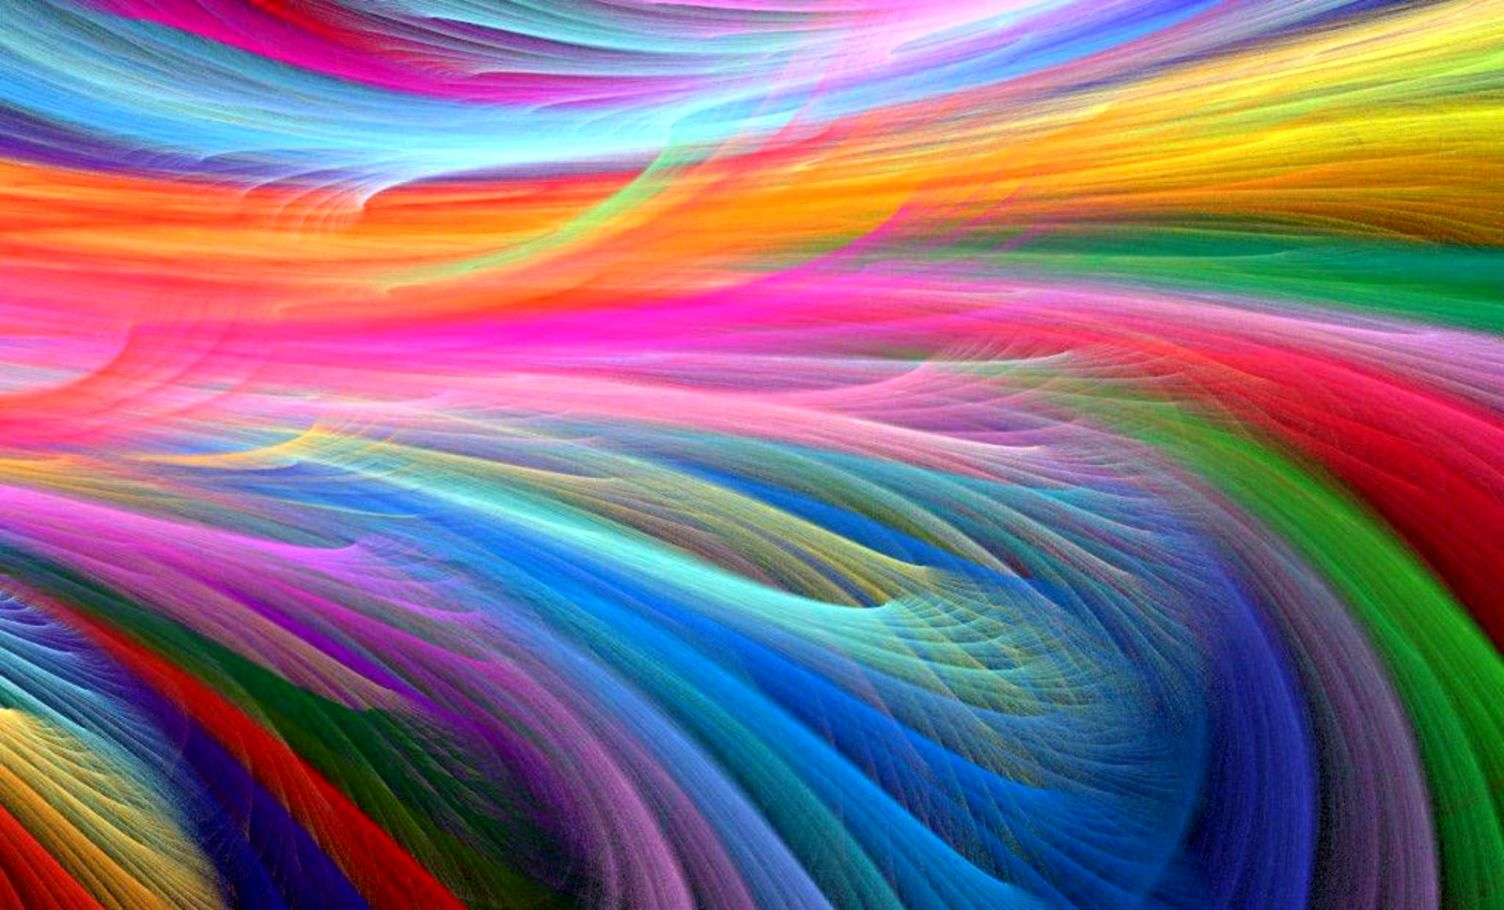 Abstract Colorful Wallpapers Hd Free Download Wallpapers